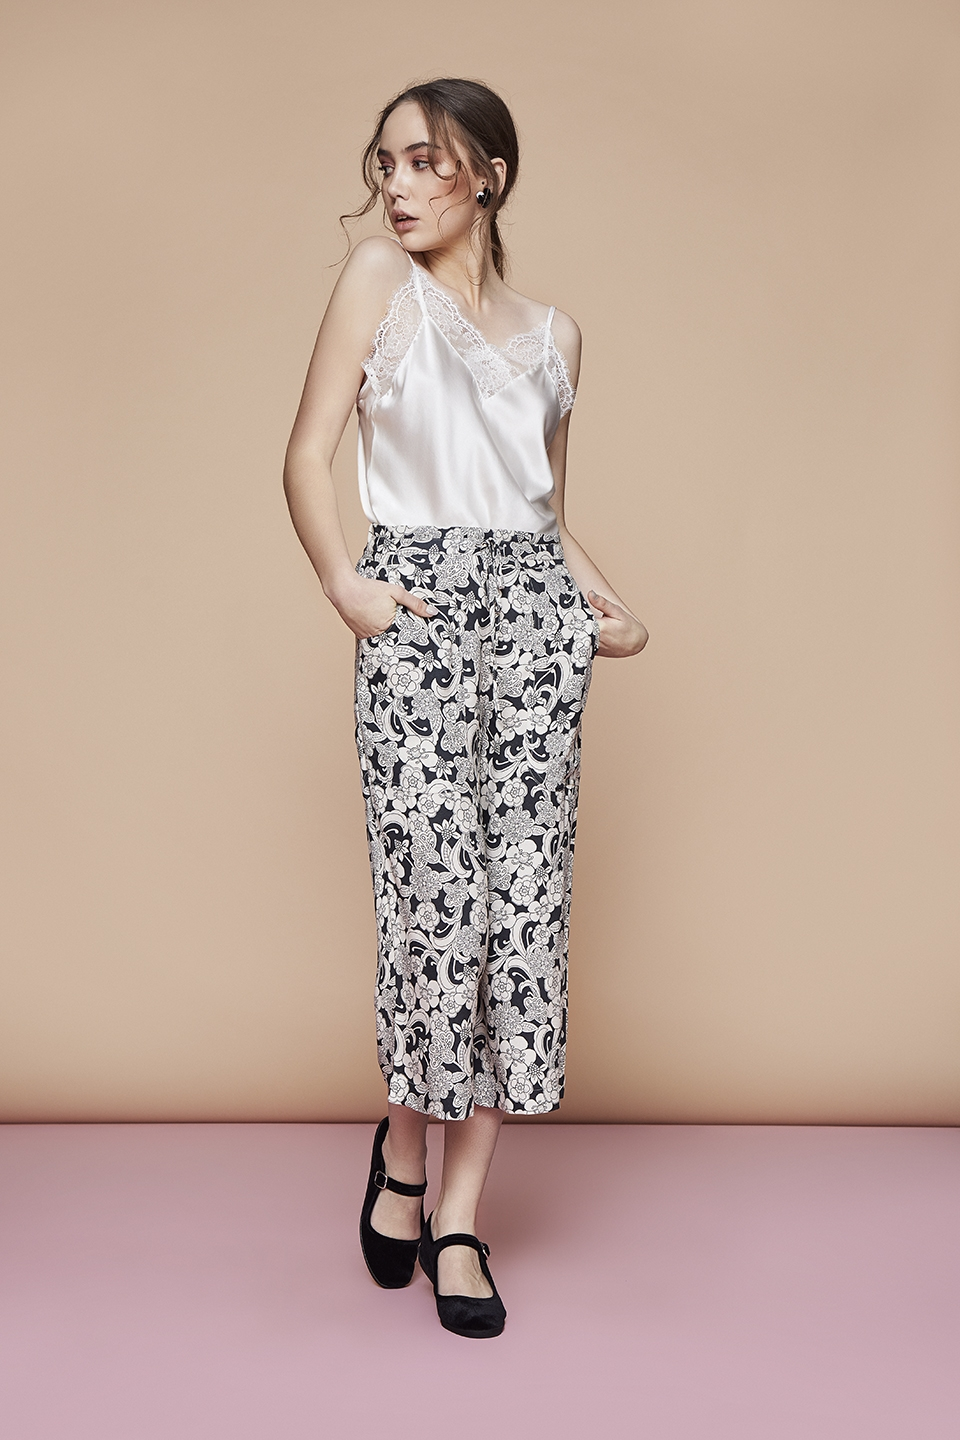 Sweety OZ111 Camiciola<br />01 Ivory, 02 Black, 03 Dark Blue<br />Love OZ112 Pantalone